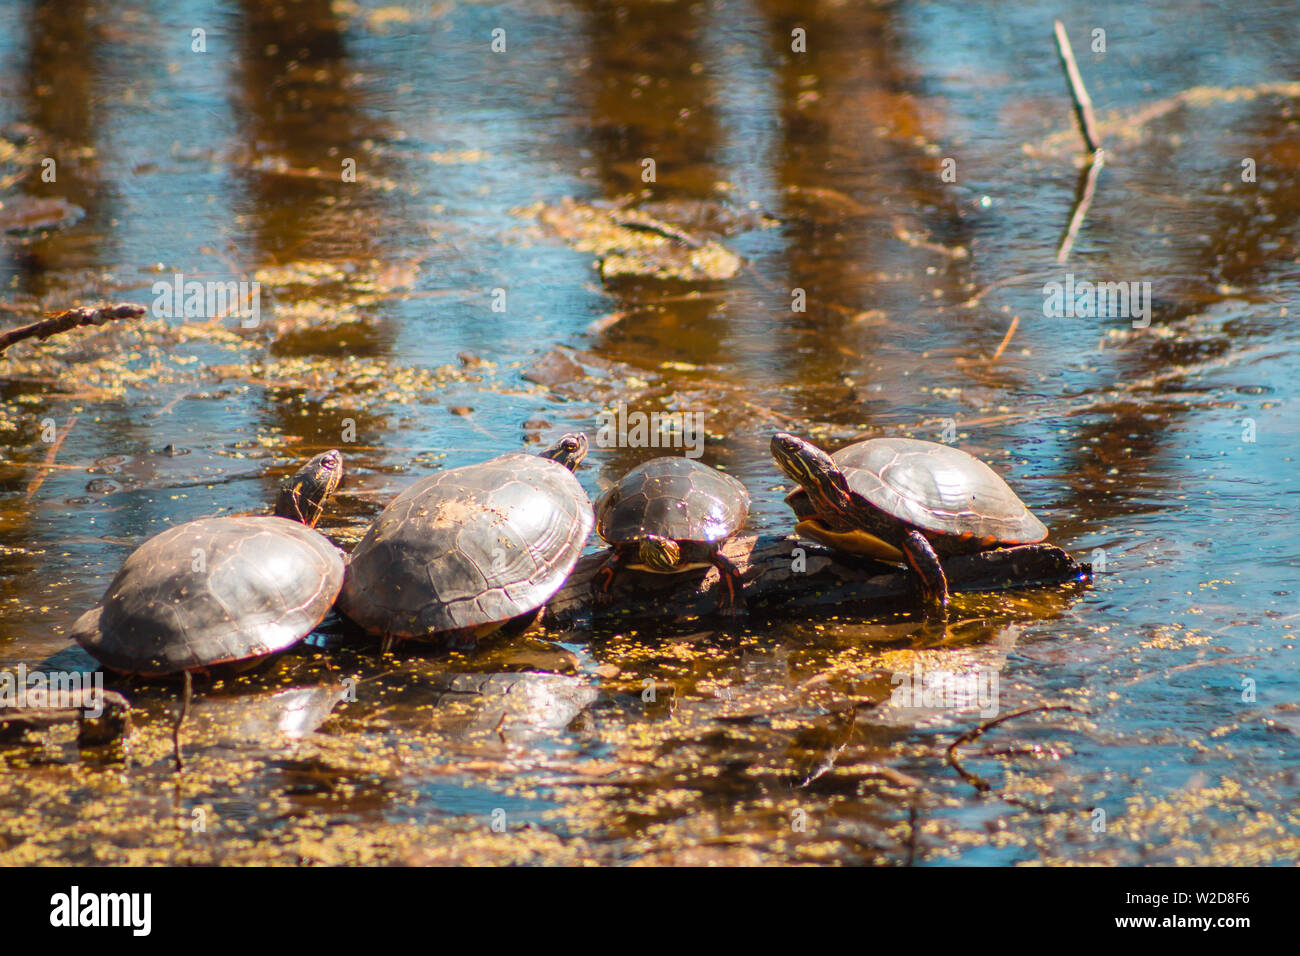 Four turtles on a log in a pond - Stock Image